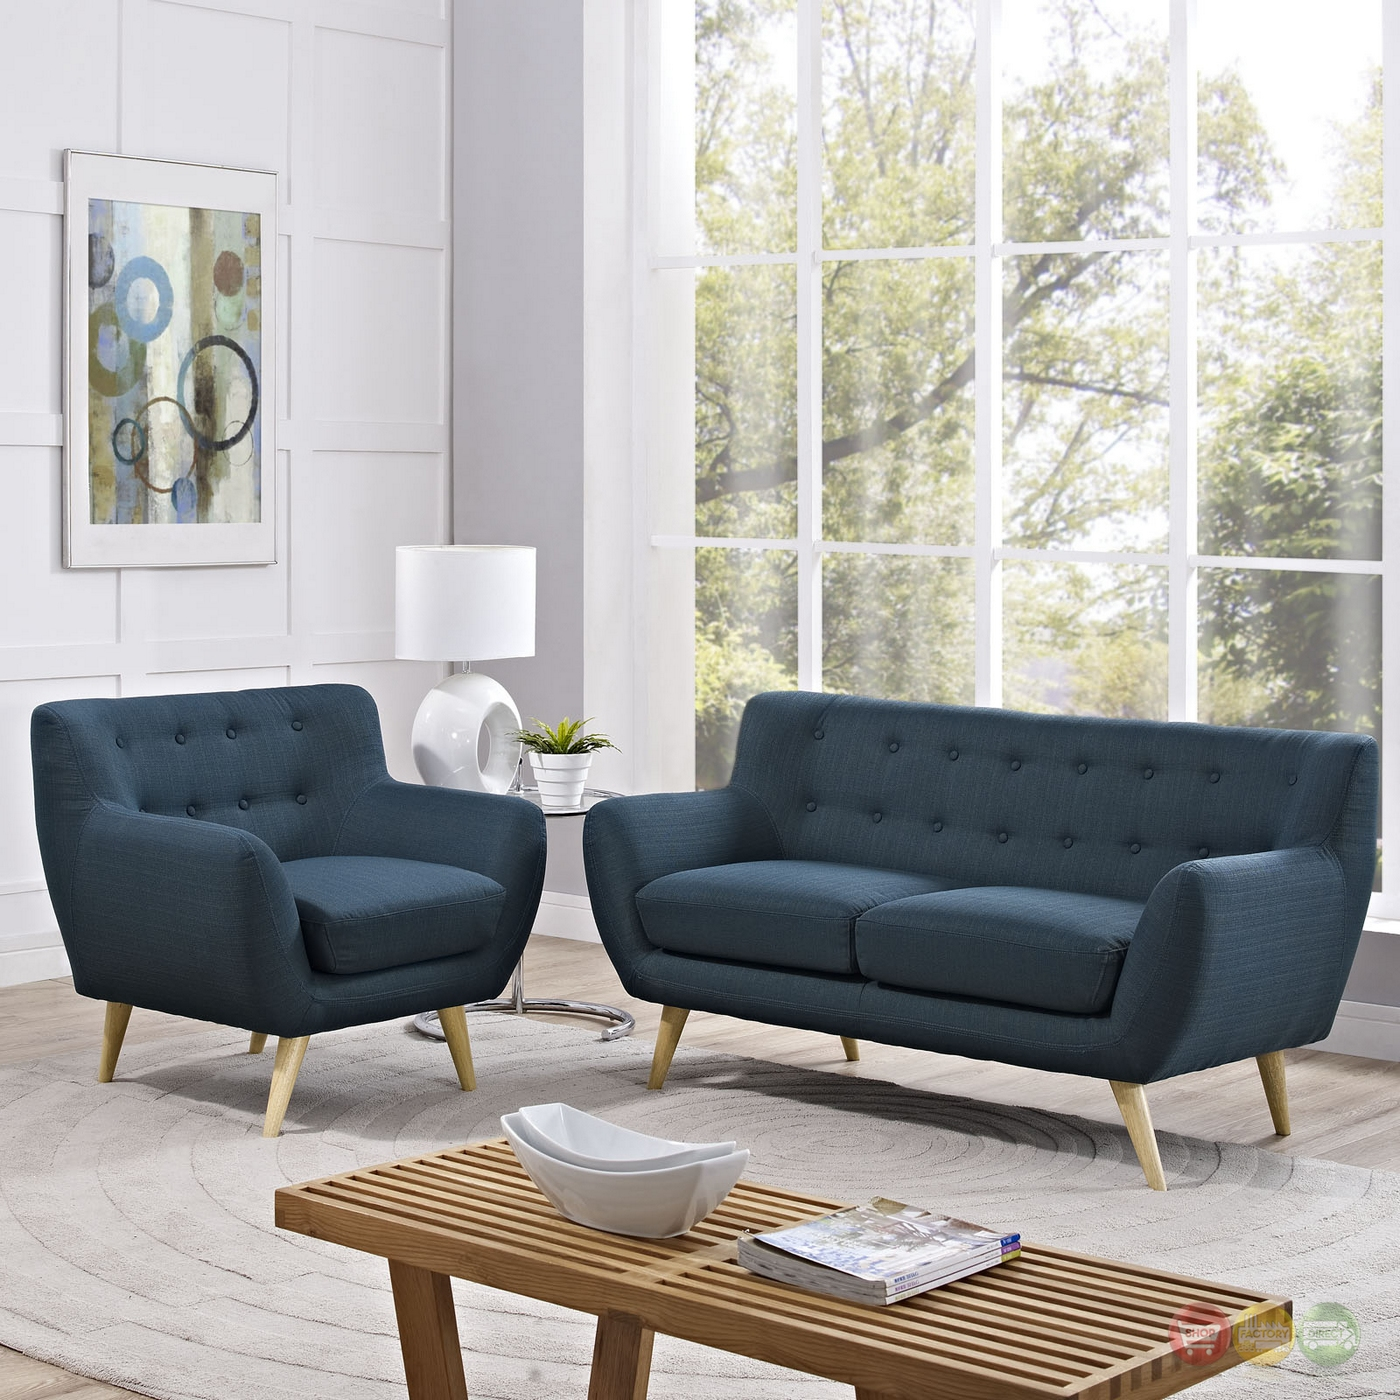 Living Room Ideas 2015 Top 5 Mid Century Modern Sofa: Mid-Century Modern Remark 2pc Button-Tufted Living Room